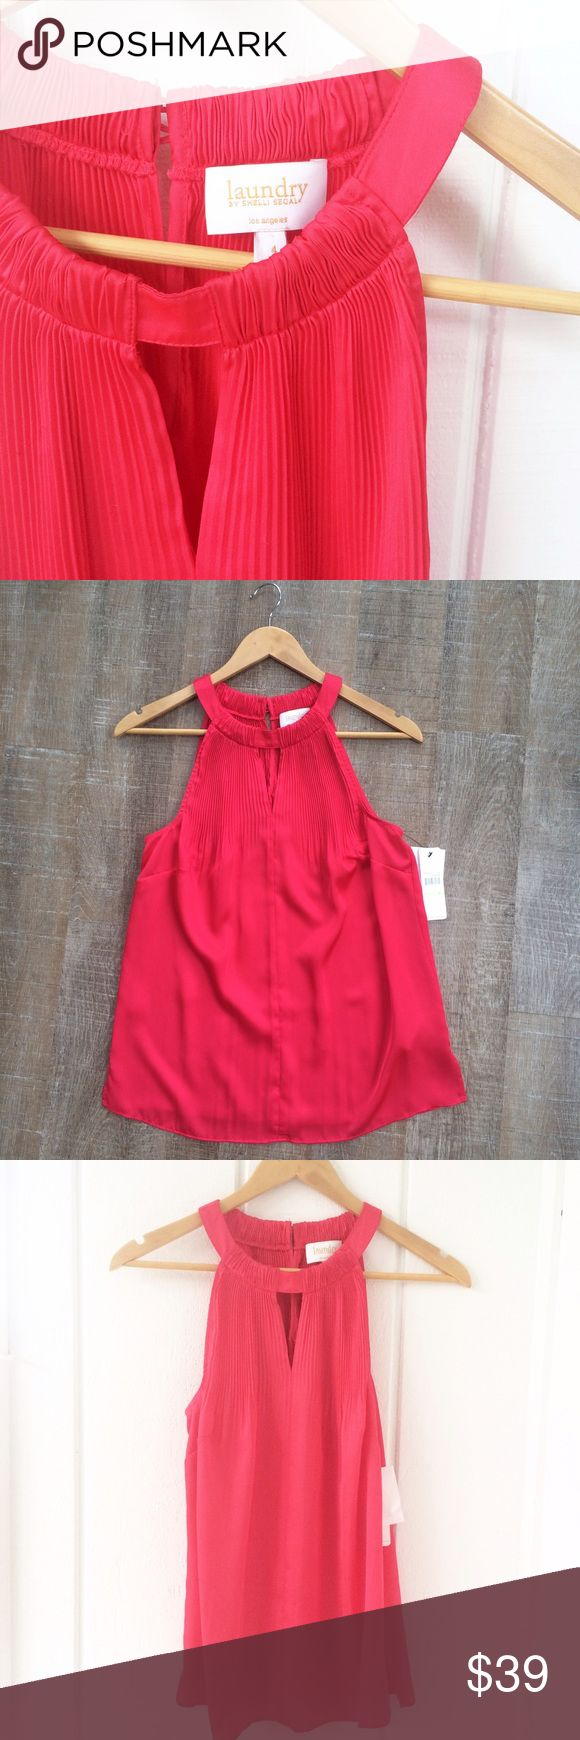 """NWT! Laundry by Shelli Segal spring top Perfect for spring! NWT! Shelli Segal 100% polyester sleeveless top. """"Geranium"""" color. Size 4. Offers welcome! Laundry by Shelli Segal Tops"""